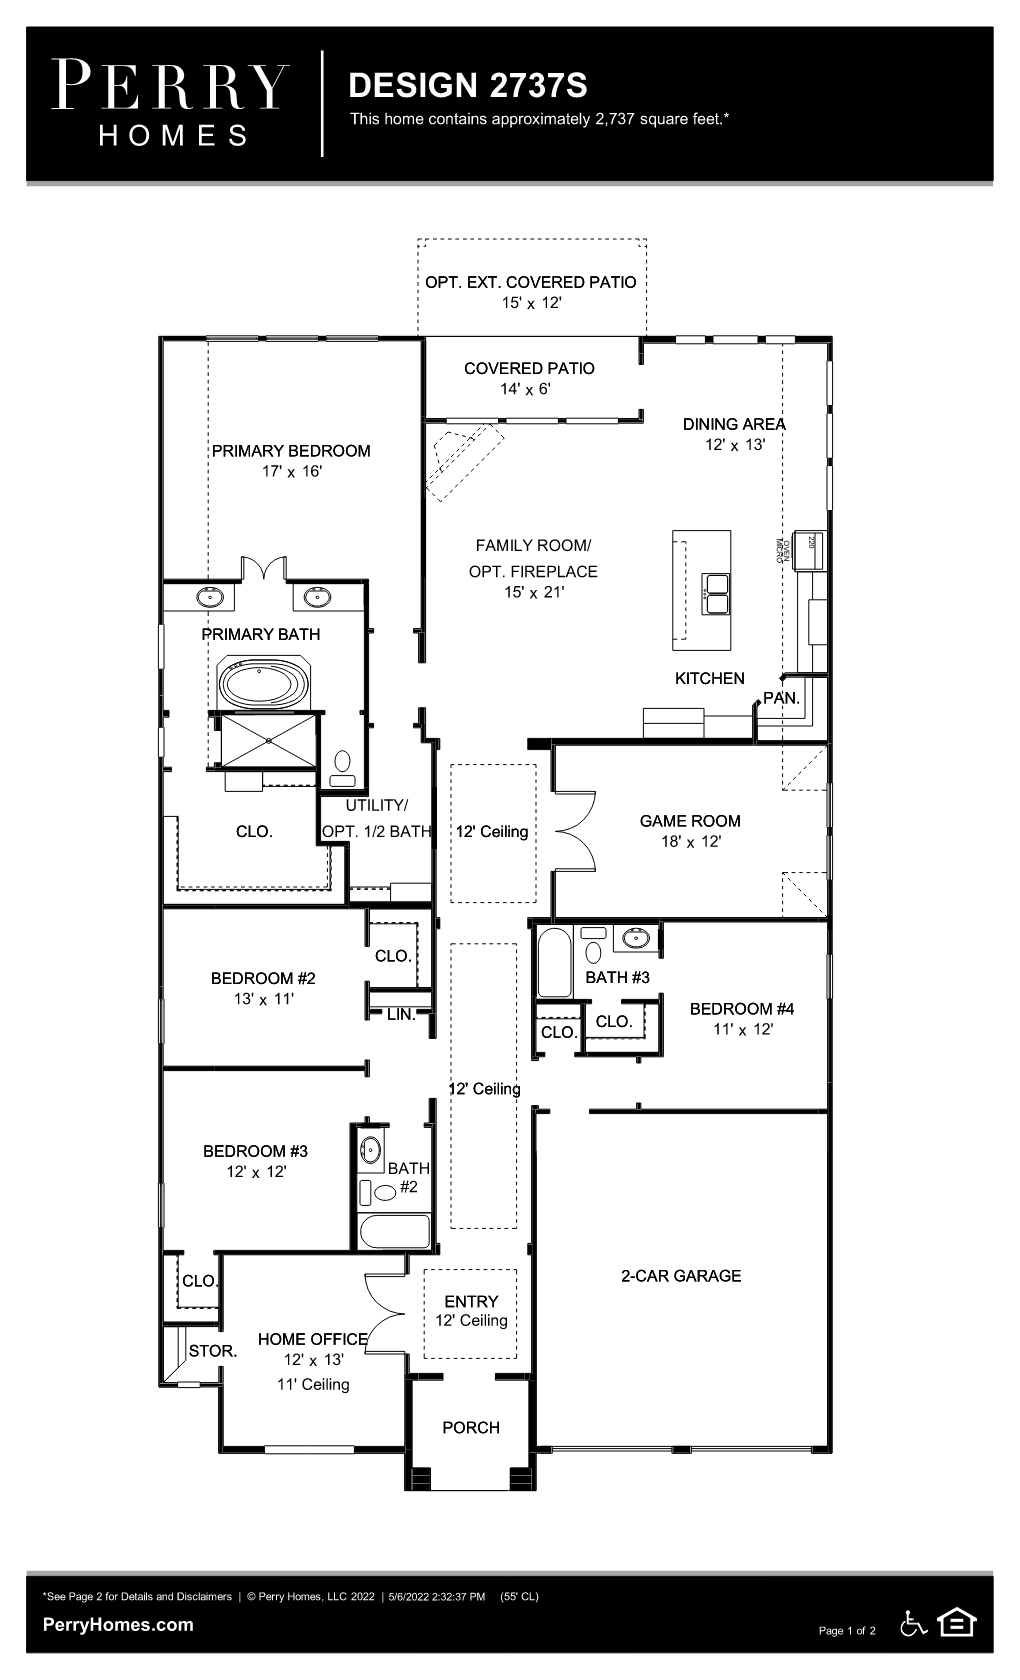 Floor Plan for 2737S